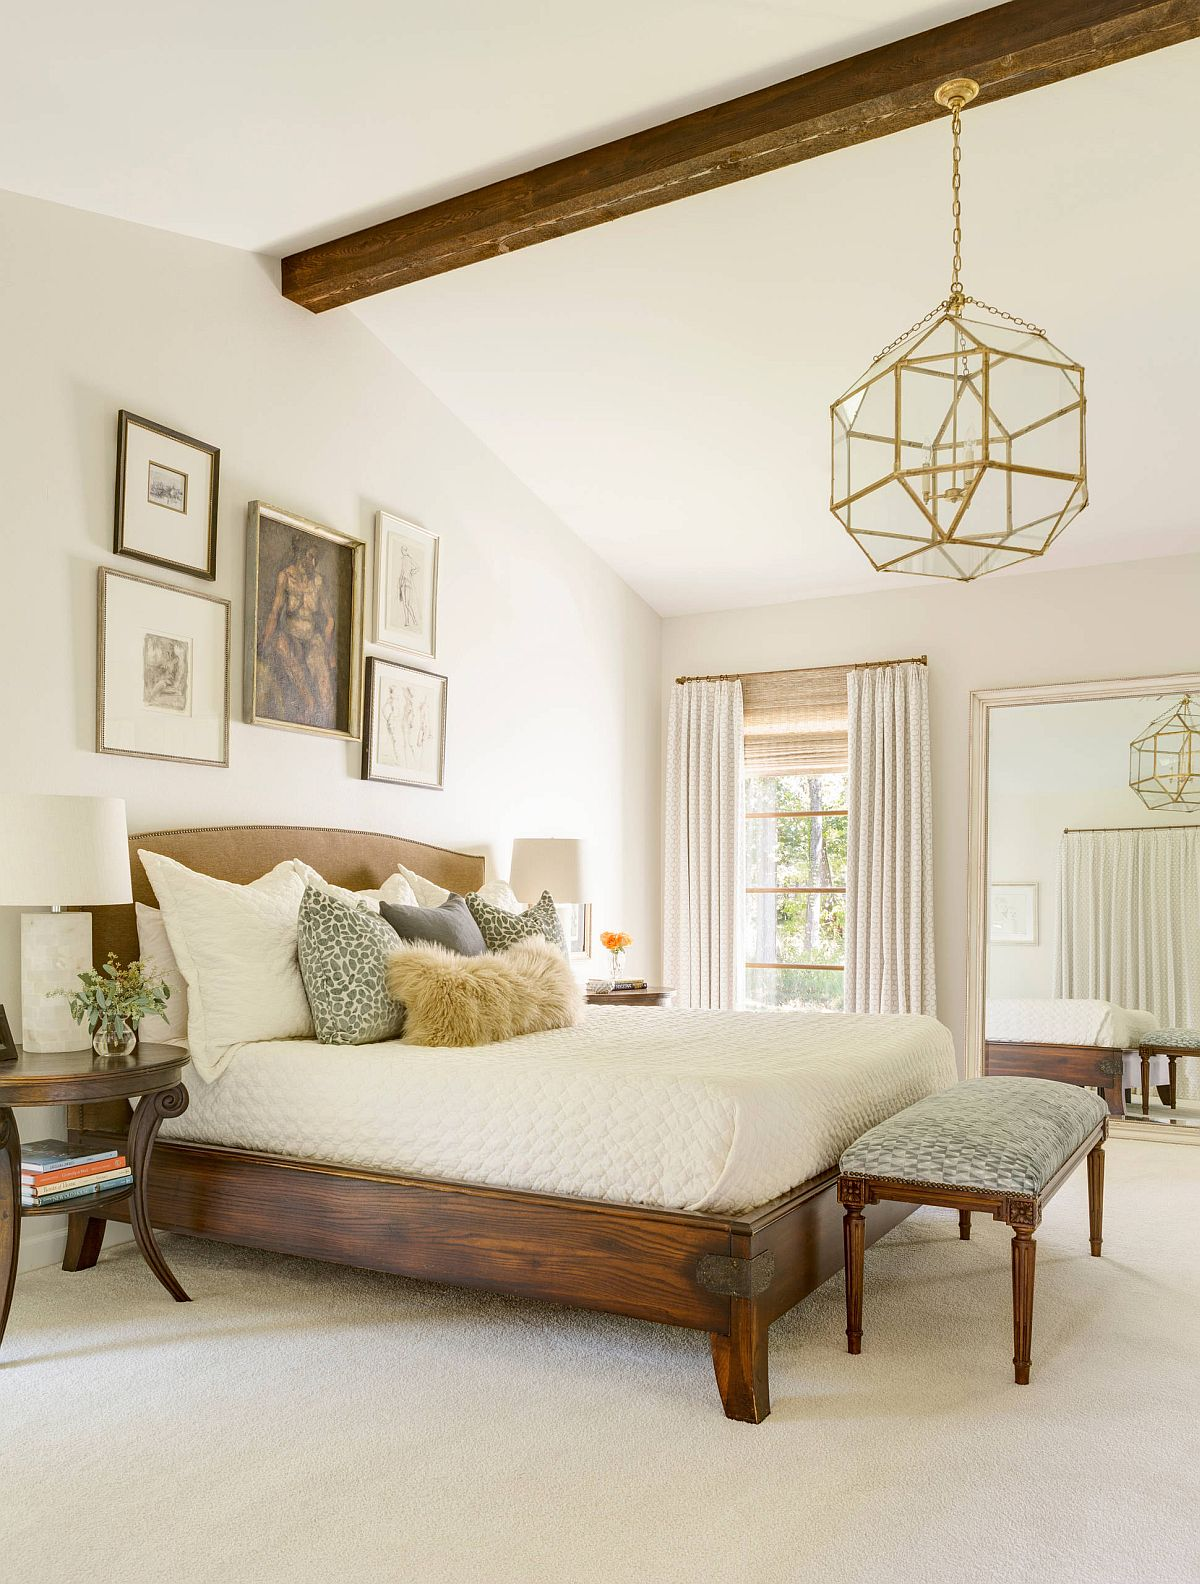 Small-gallery-wall-in-the-large-bedroom-still-makes-plenty-of-impact-29724